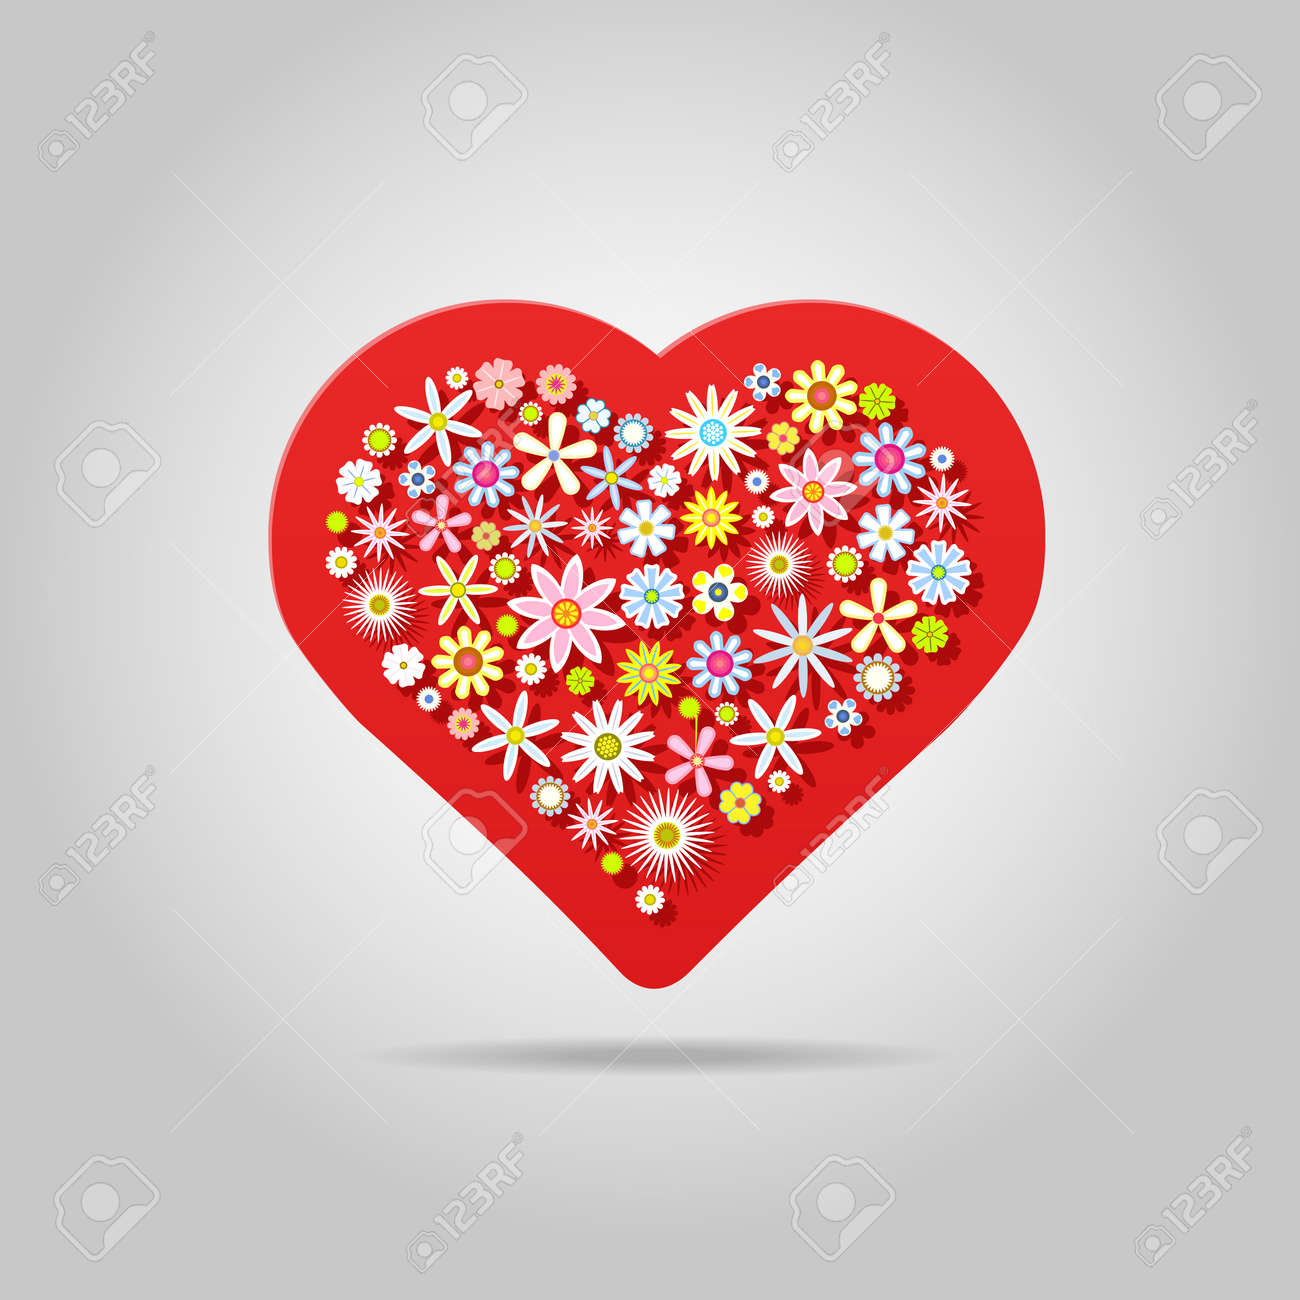 Heart shaped flowes greeting card for valentines day and any heart shaped flowes greeting card for valentines day and any love event vector illustration m4hsunfo